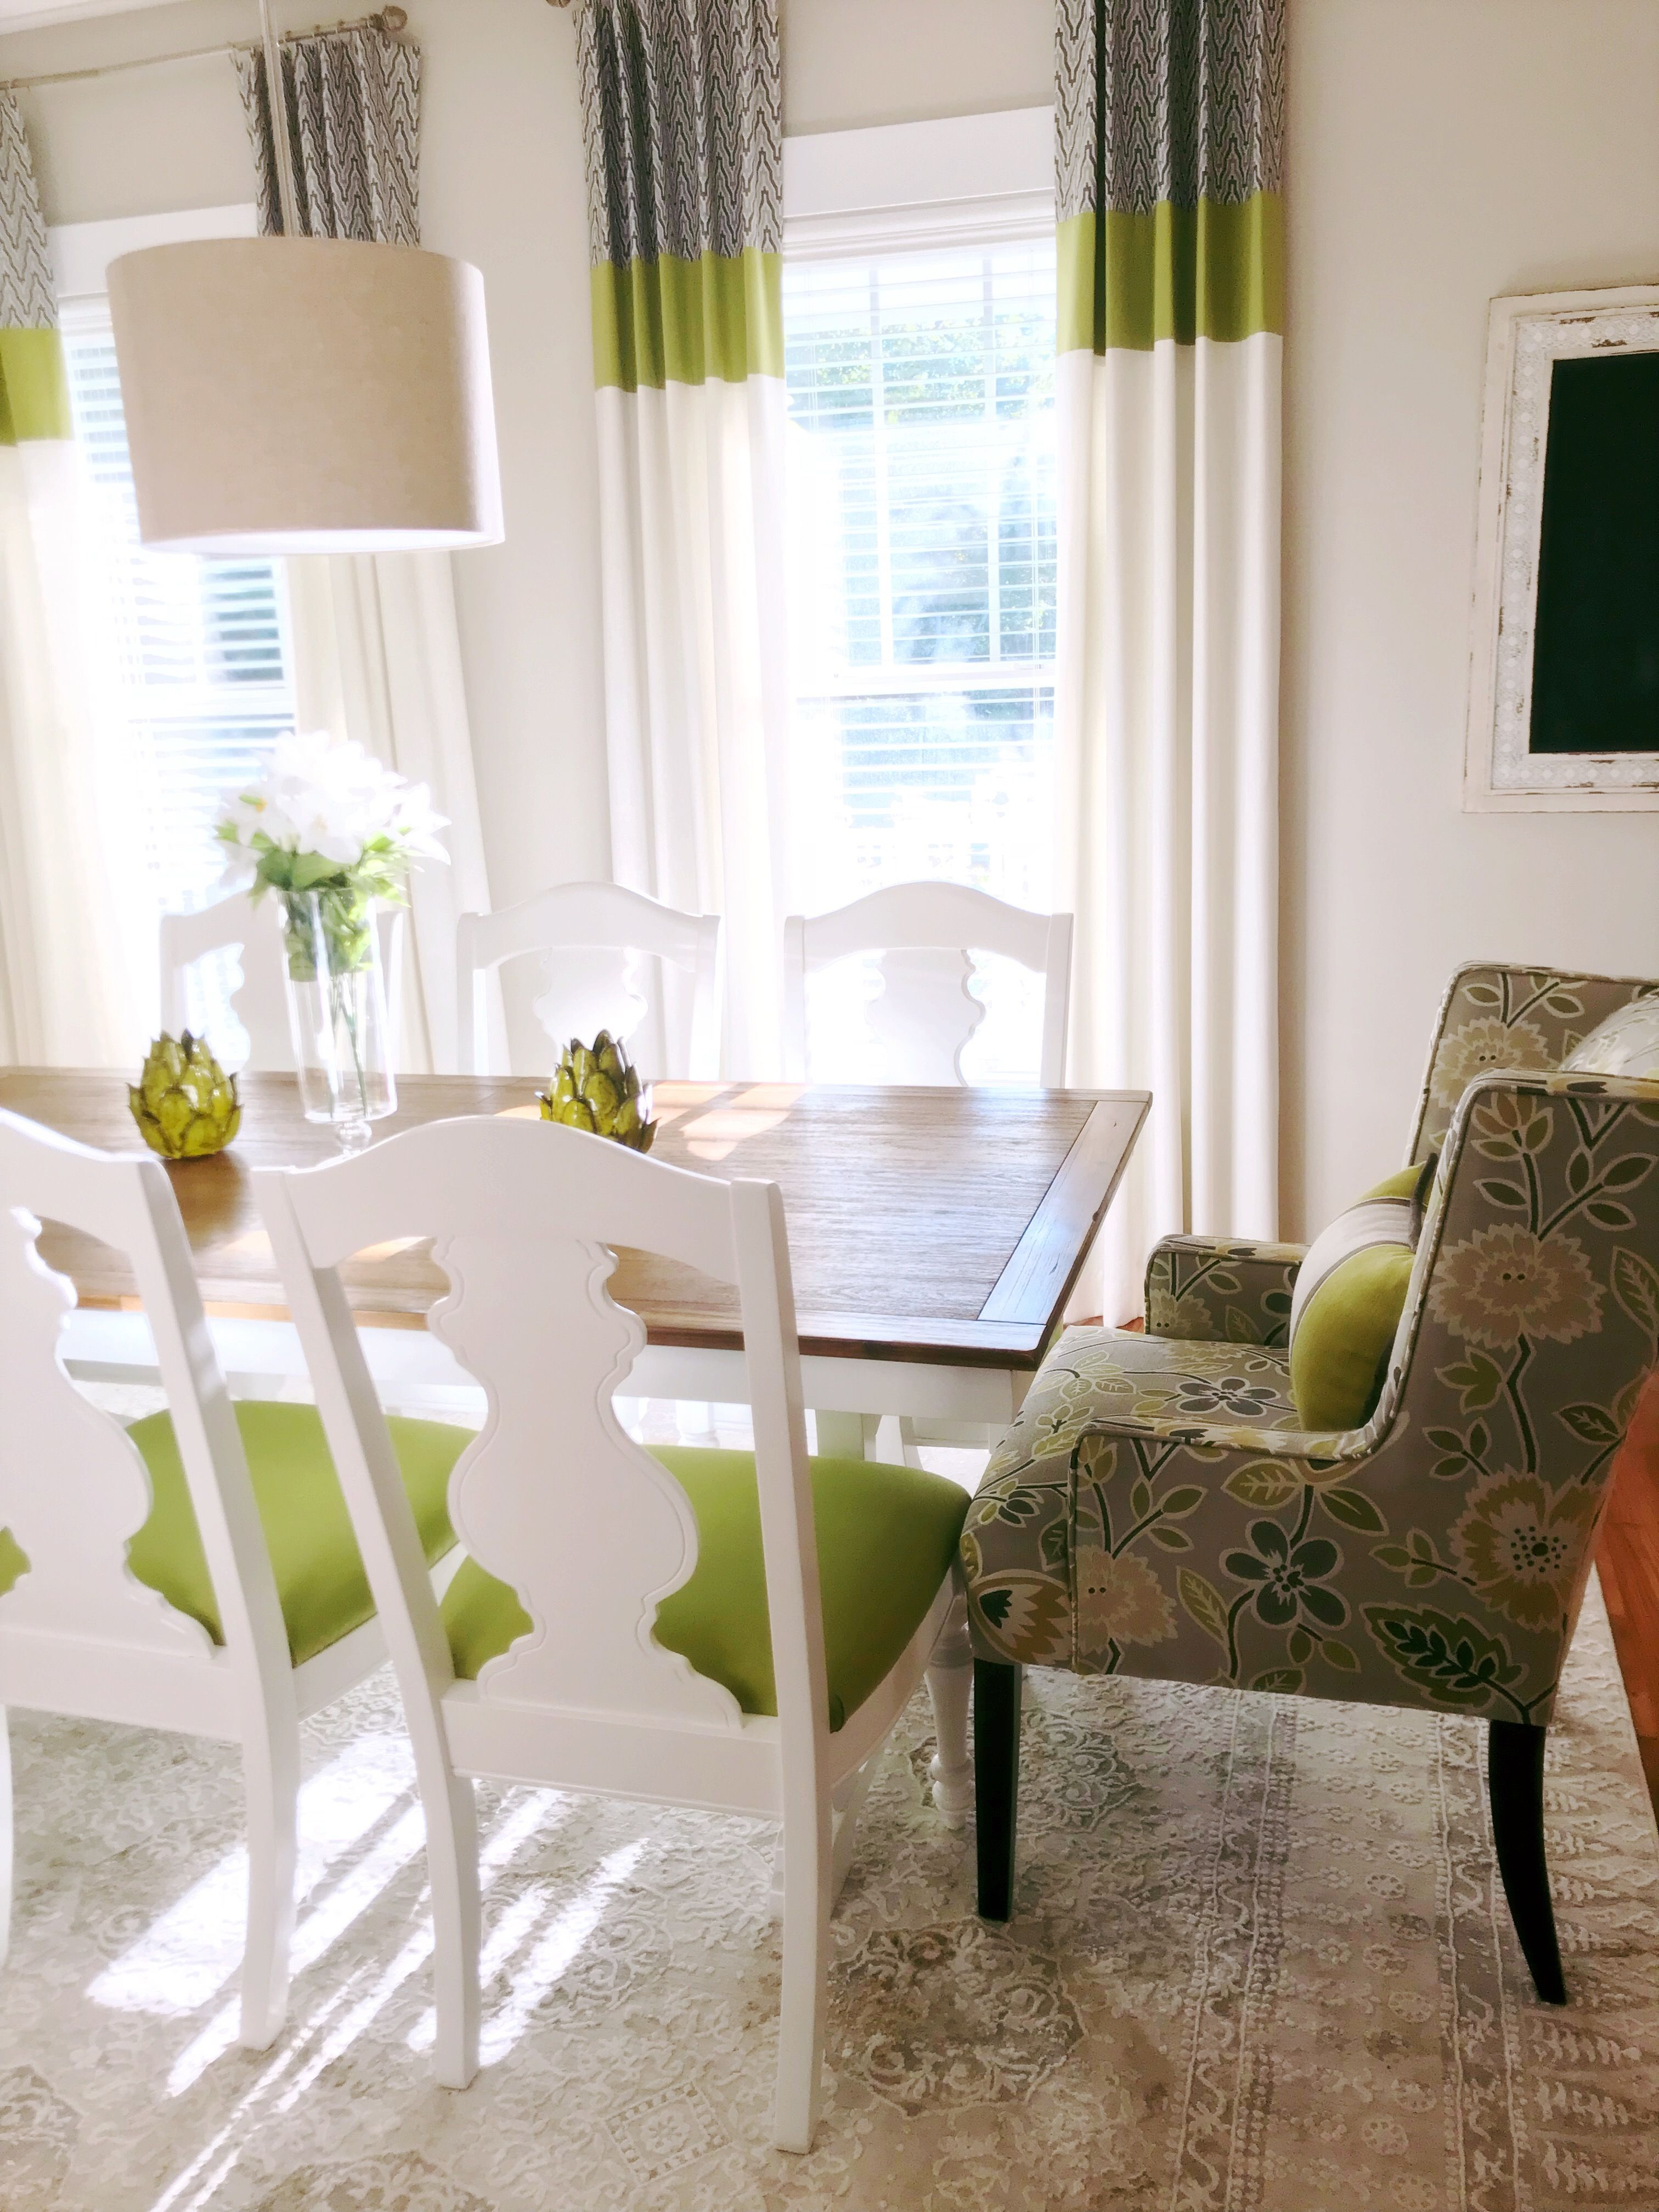 Dining Table With Images Dining Table Cloth Custom Table Cloth Furniture Covers